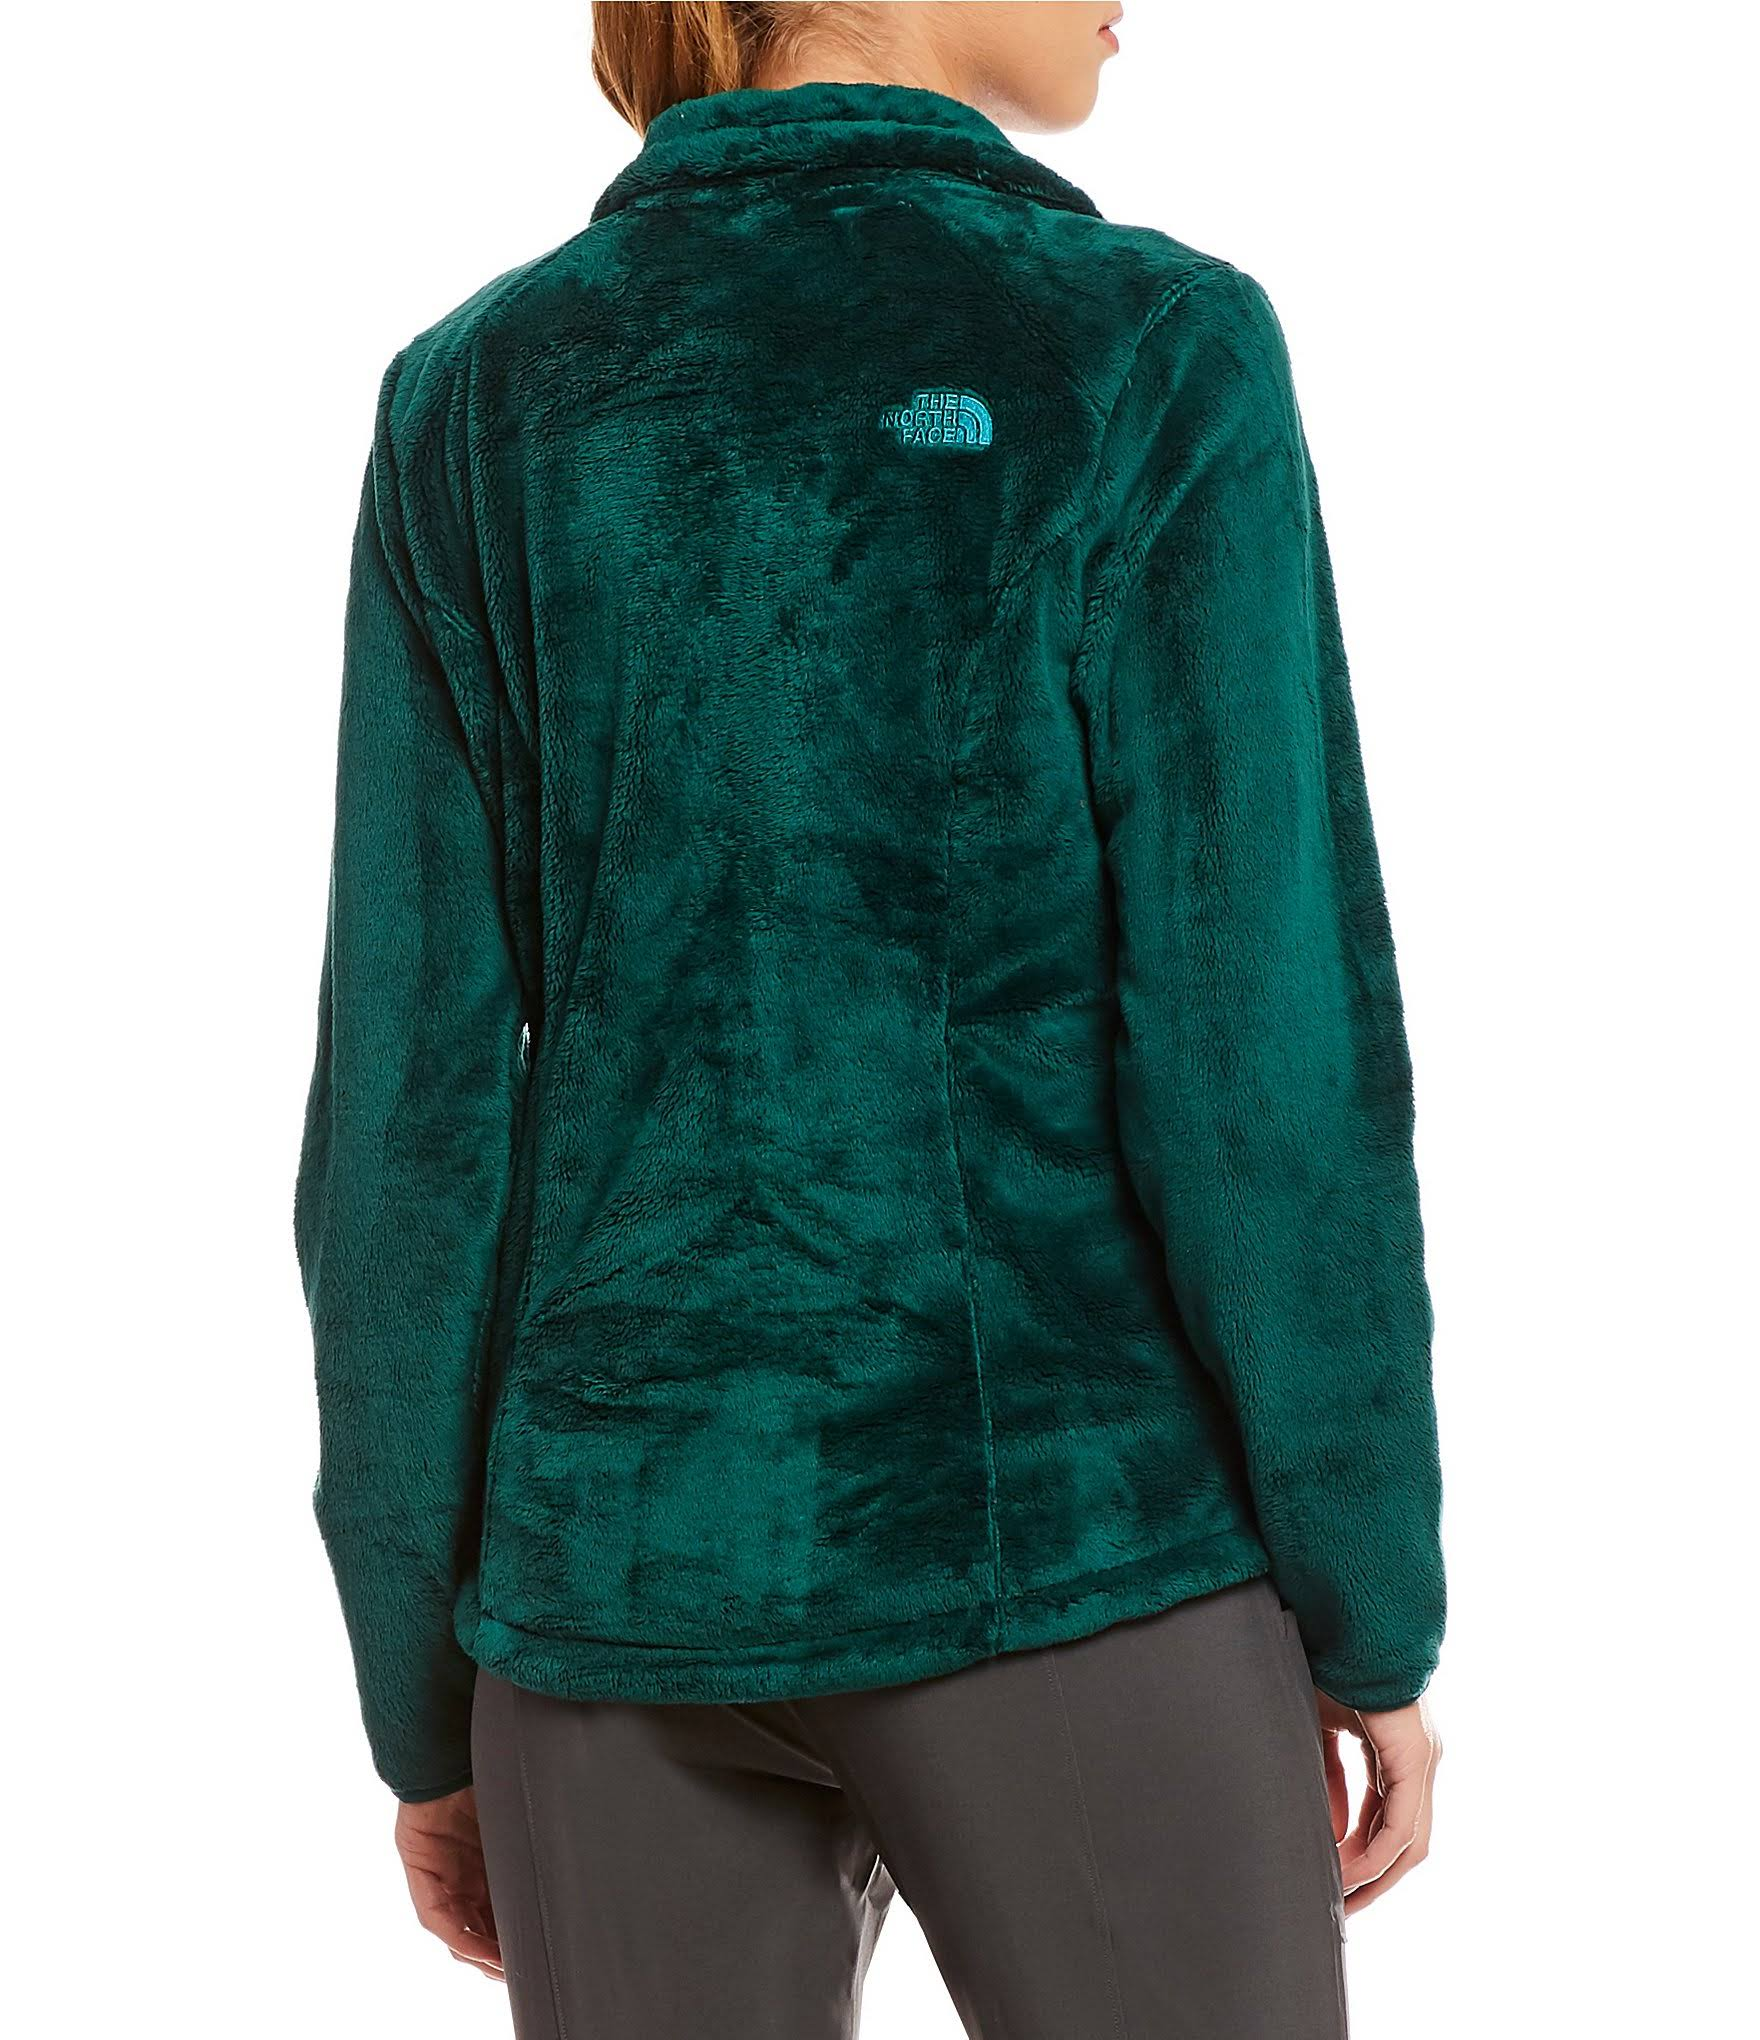 Osito Garden The Jacke North M Damen Face 2 Botanical Für Green rrEO8q